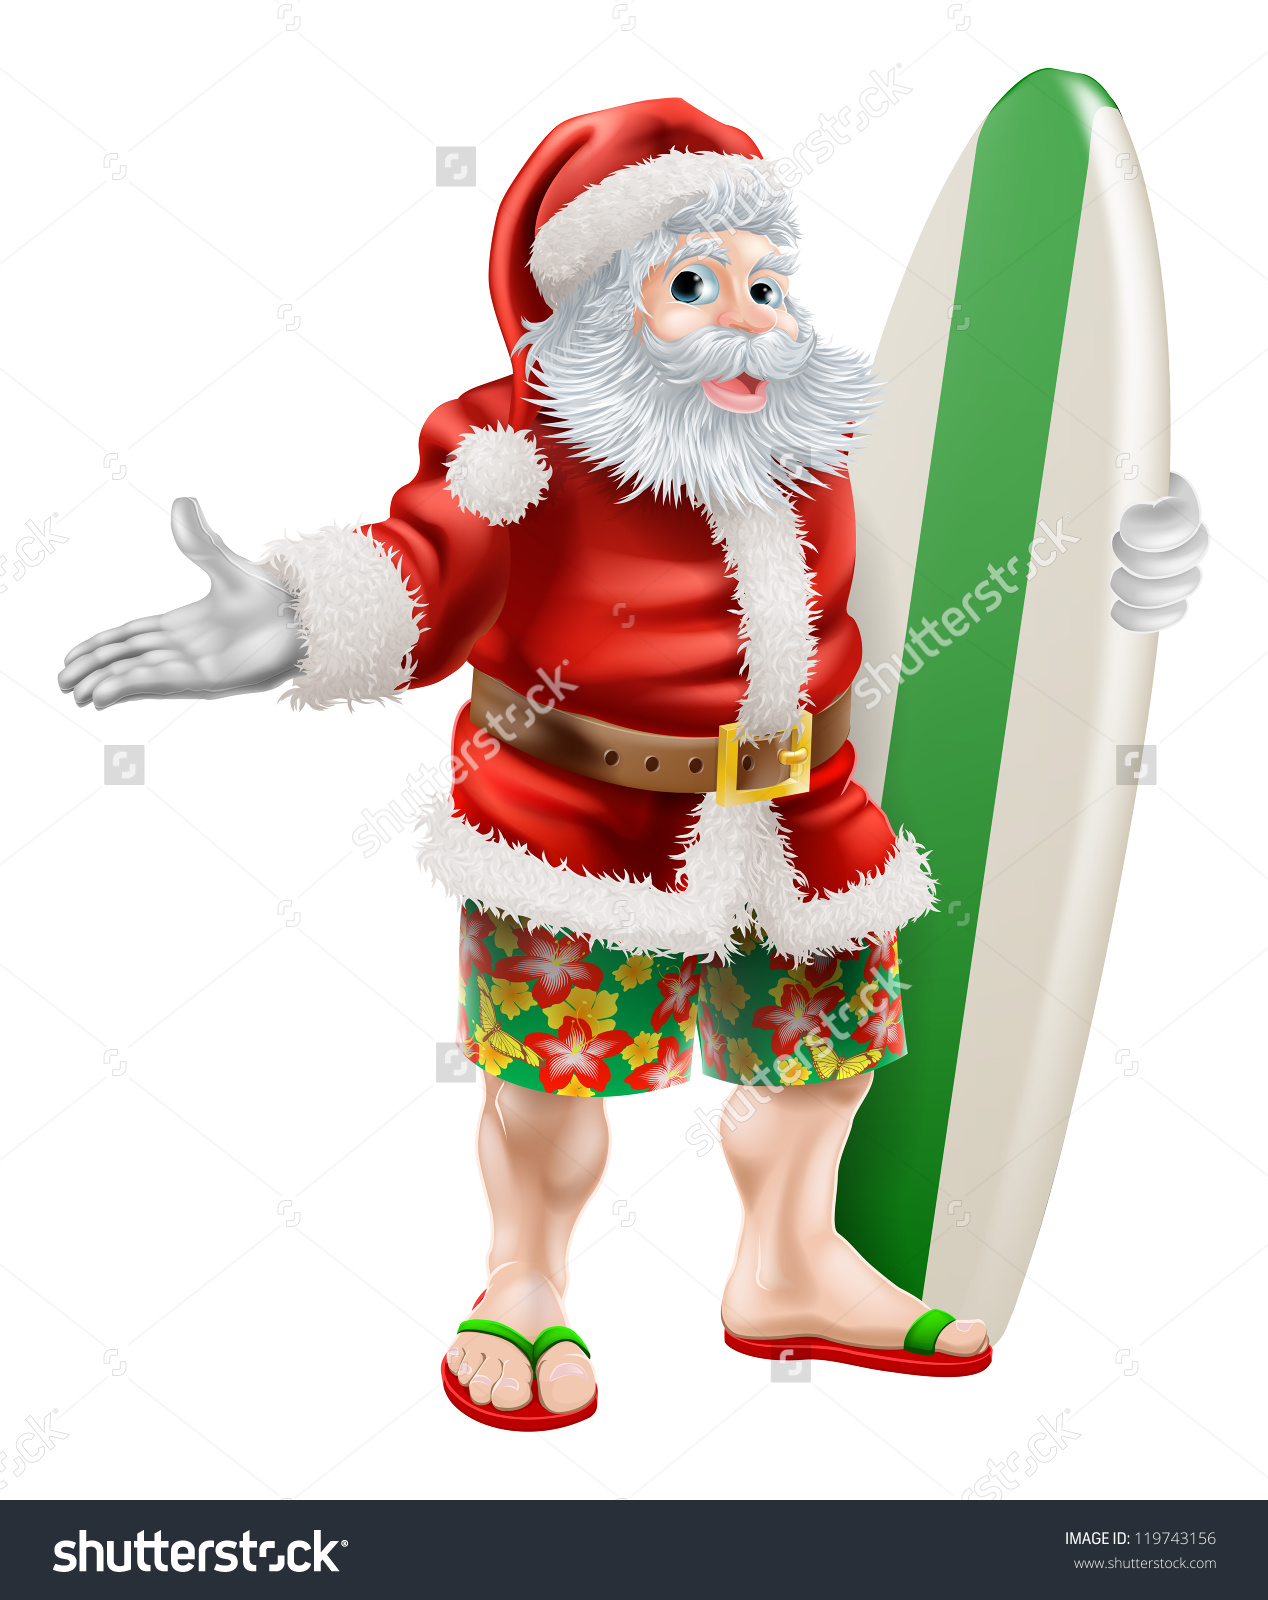 Santa surfboard clipart graphic royalty free download An Illustration Of A Cartoon Santa In Beach Board Shorts Holding A ... graphic royalty free download